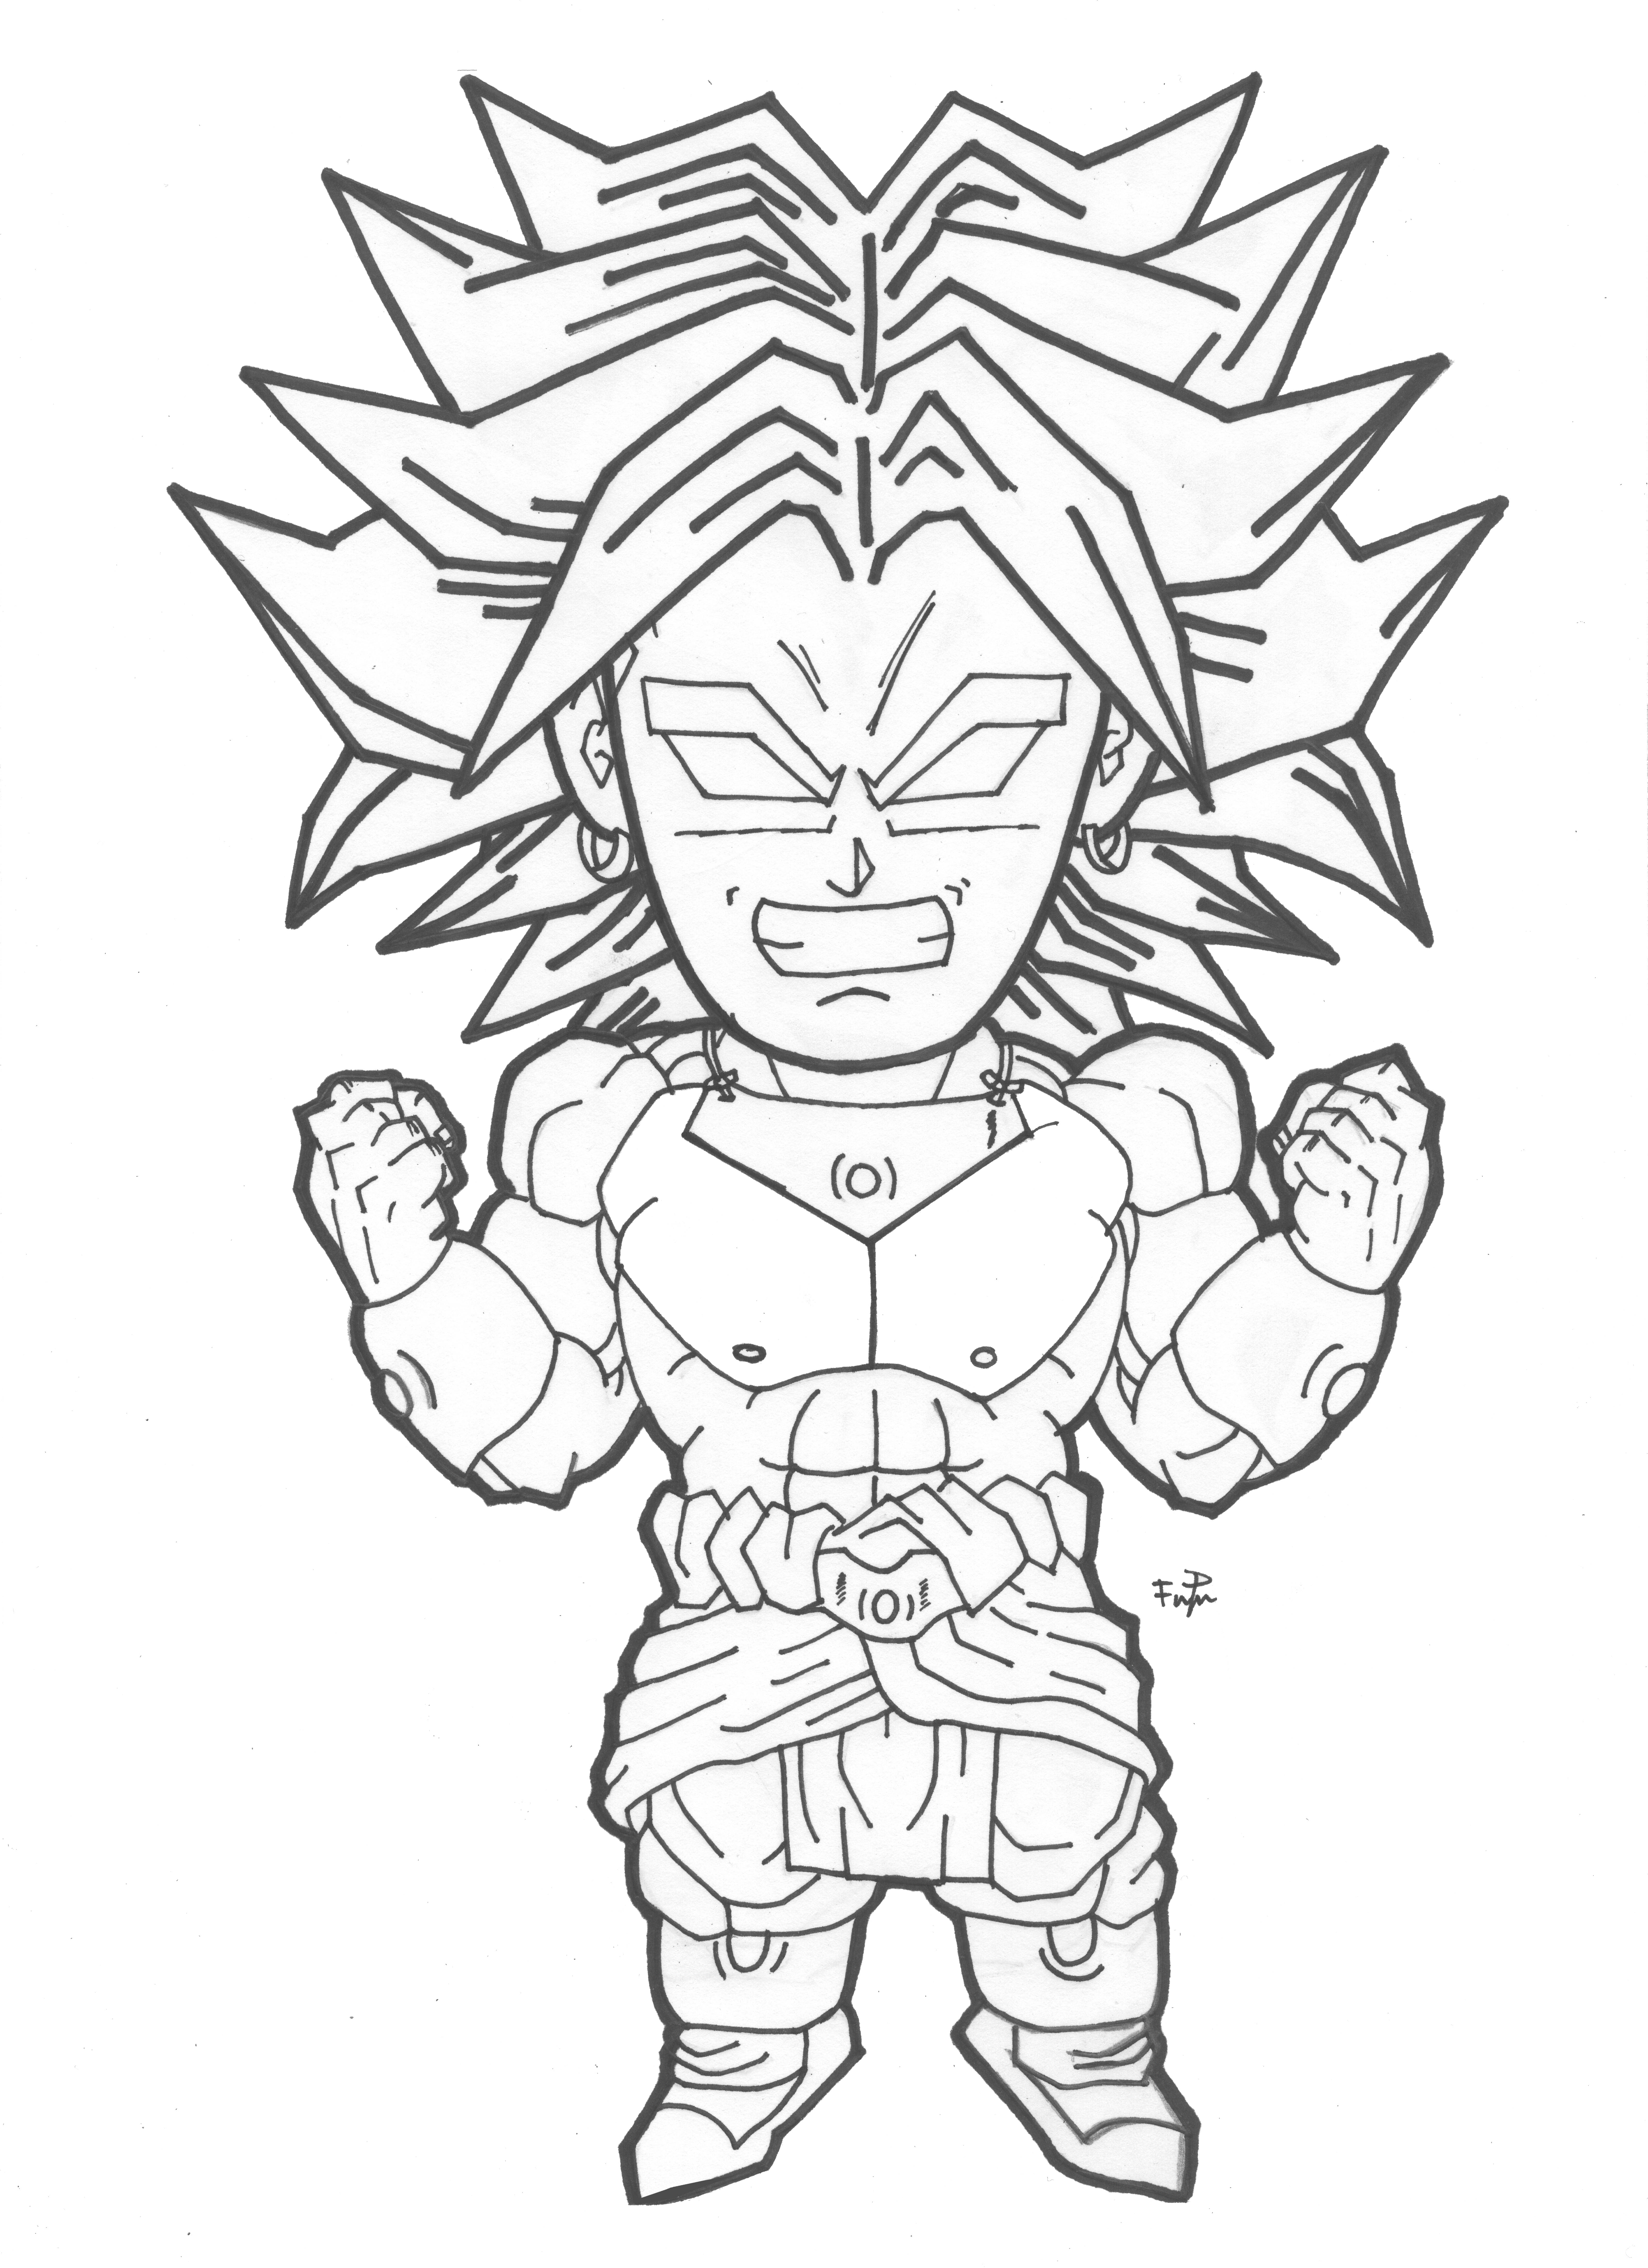 broly coloring pages broly coloring pages coloring pages broly